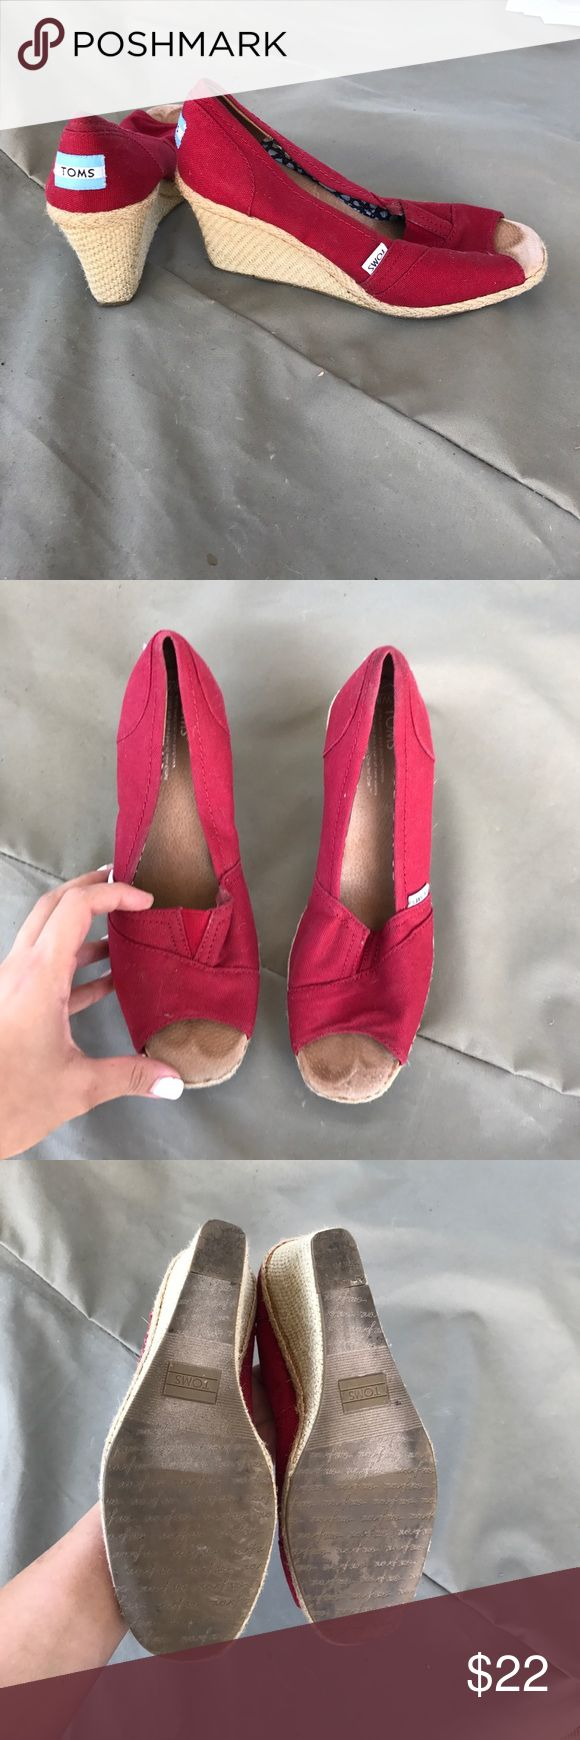 Red TOMS wedges Good condition. Minor signs of wear no rips. TOMS Shoes Wedges